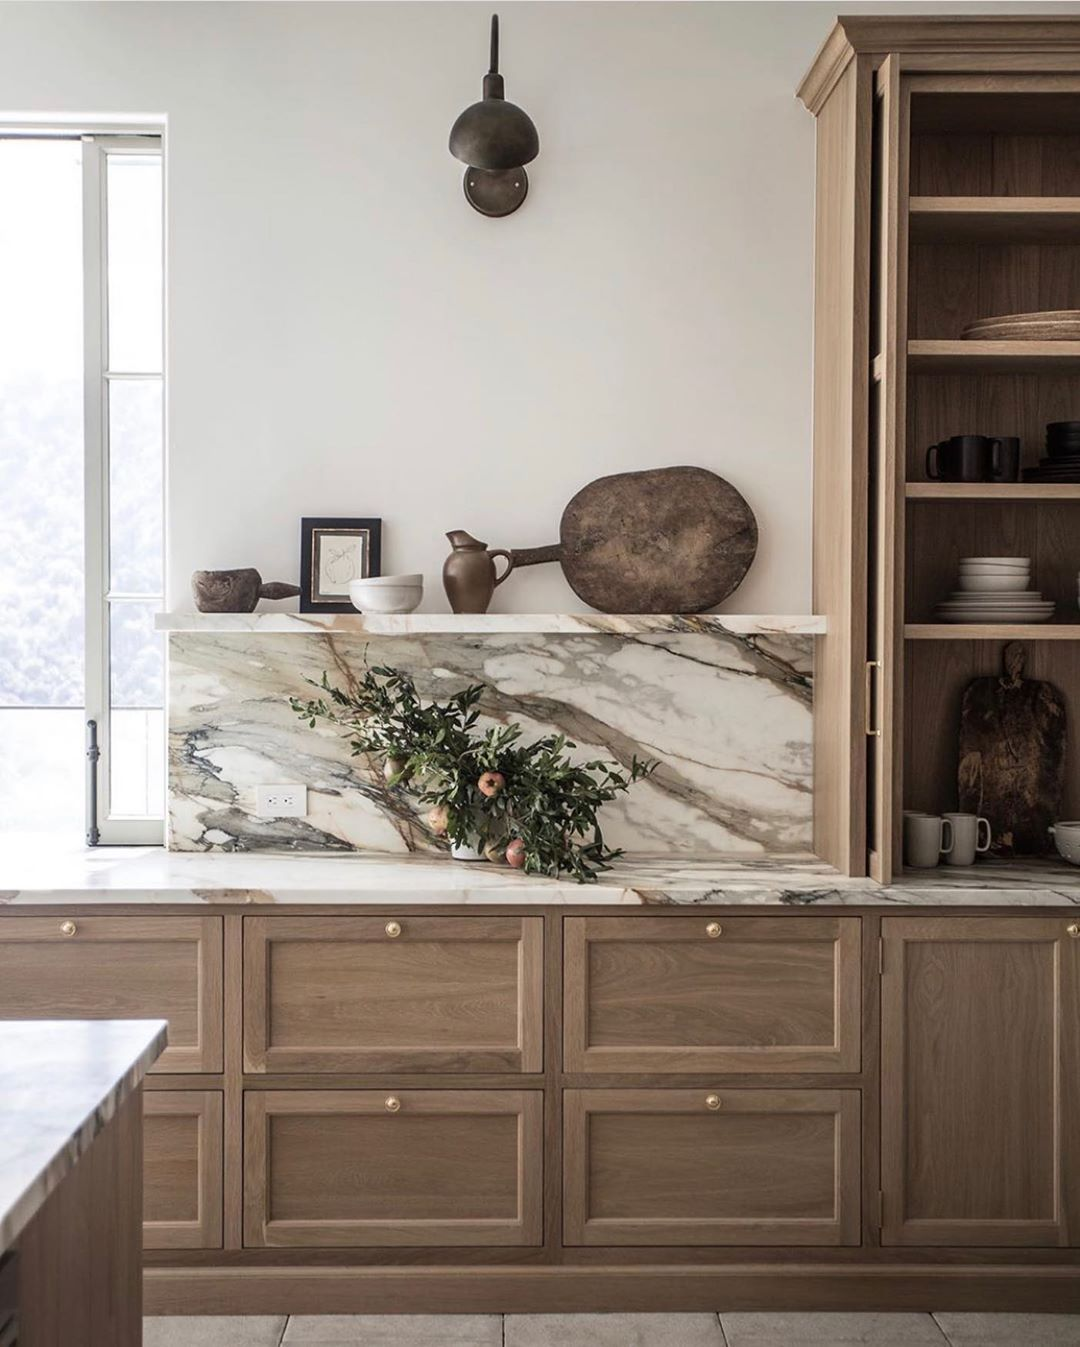 Just YES. @jakealexanderarnold can do no wrong. Bravo on the most beautiful, classic kitchen.